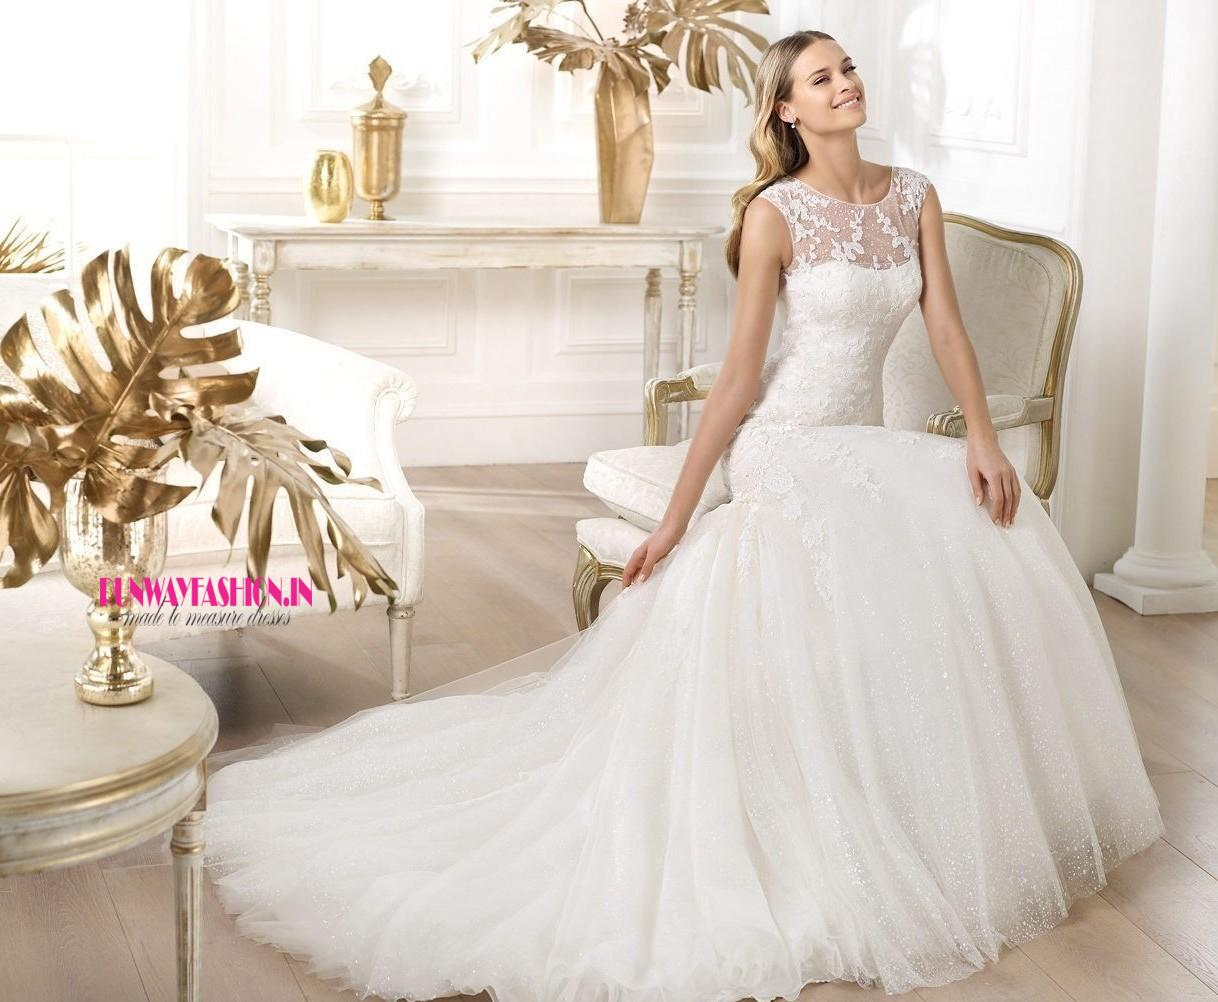 Christian wedding gowns dresses custom tailor made for Where can i rent a wedding dress